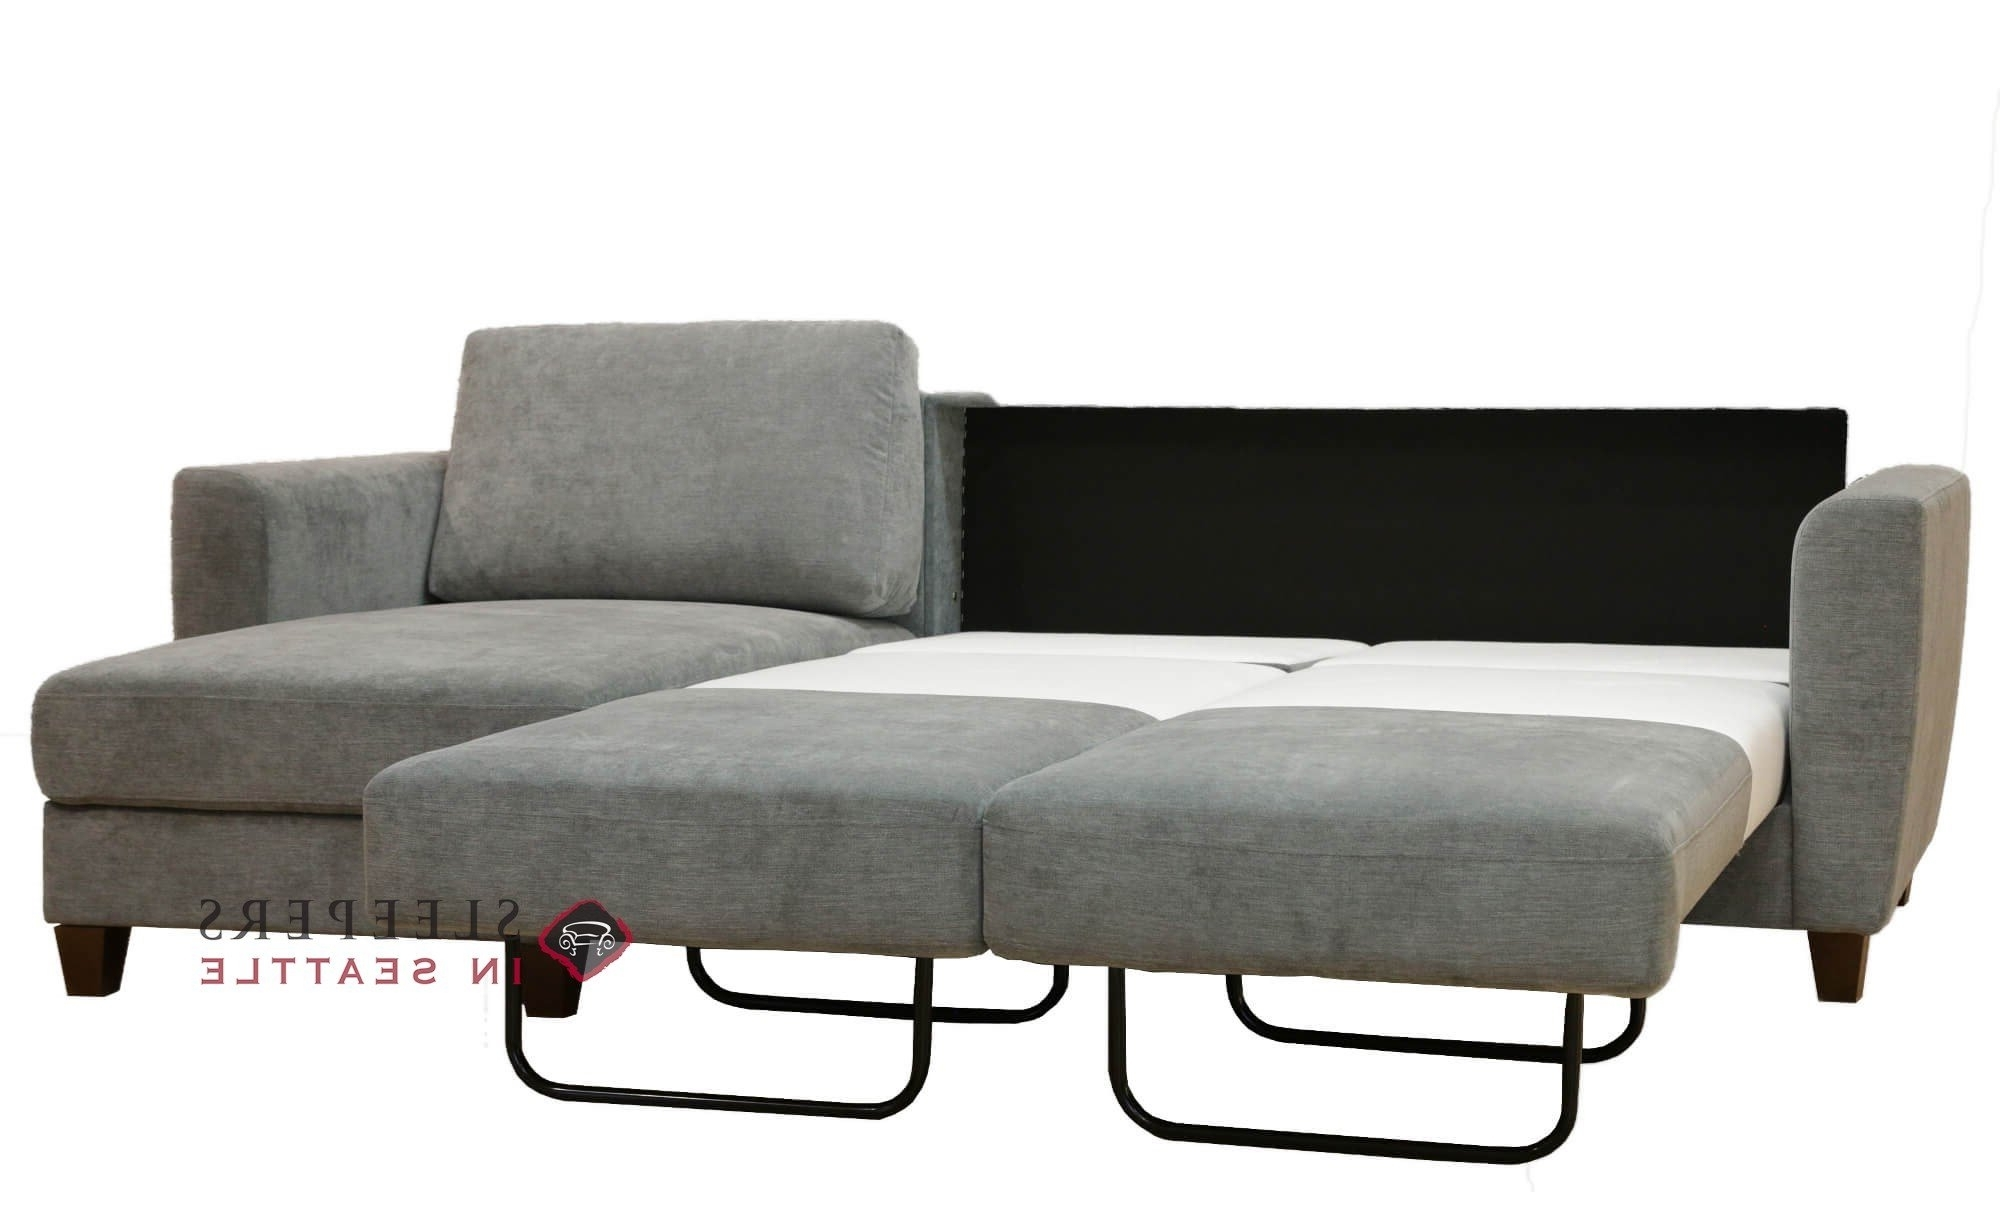 Favorite Sleeper Chaises Regarding Customize And Personalize Flex Chaise Sectional Fabric Sofa (View 9 of 15)